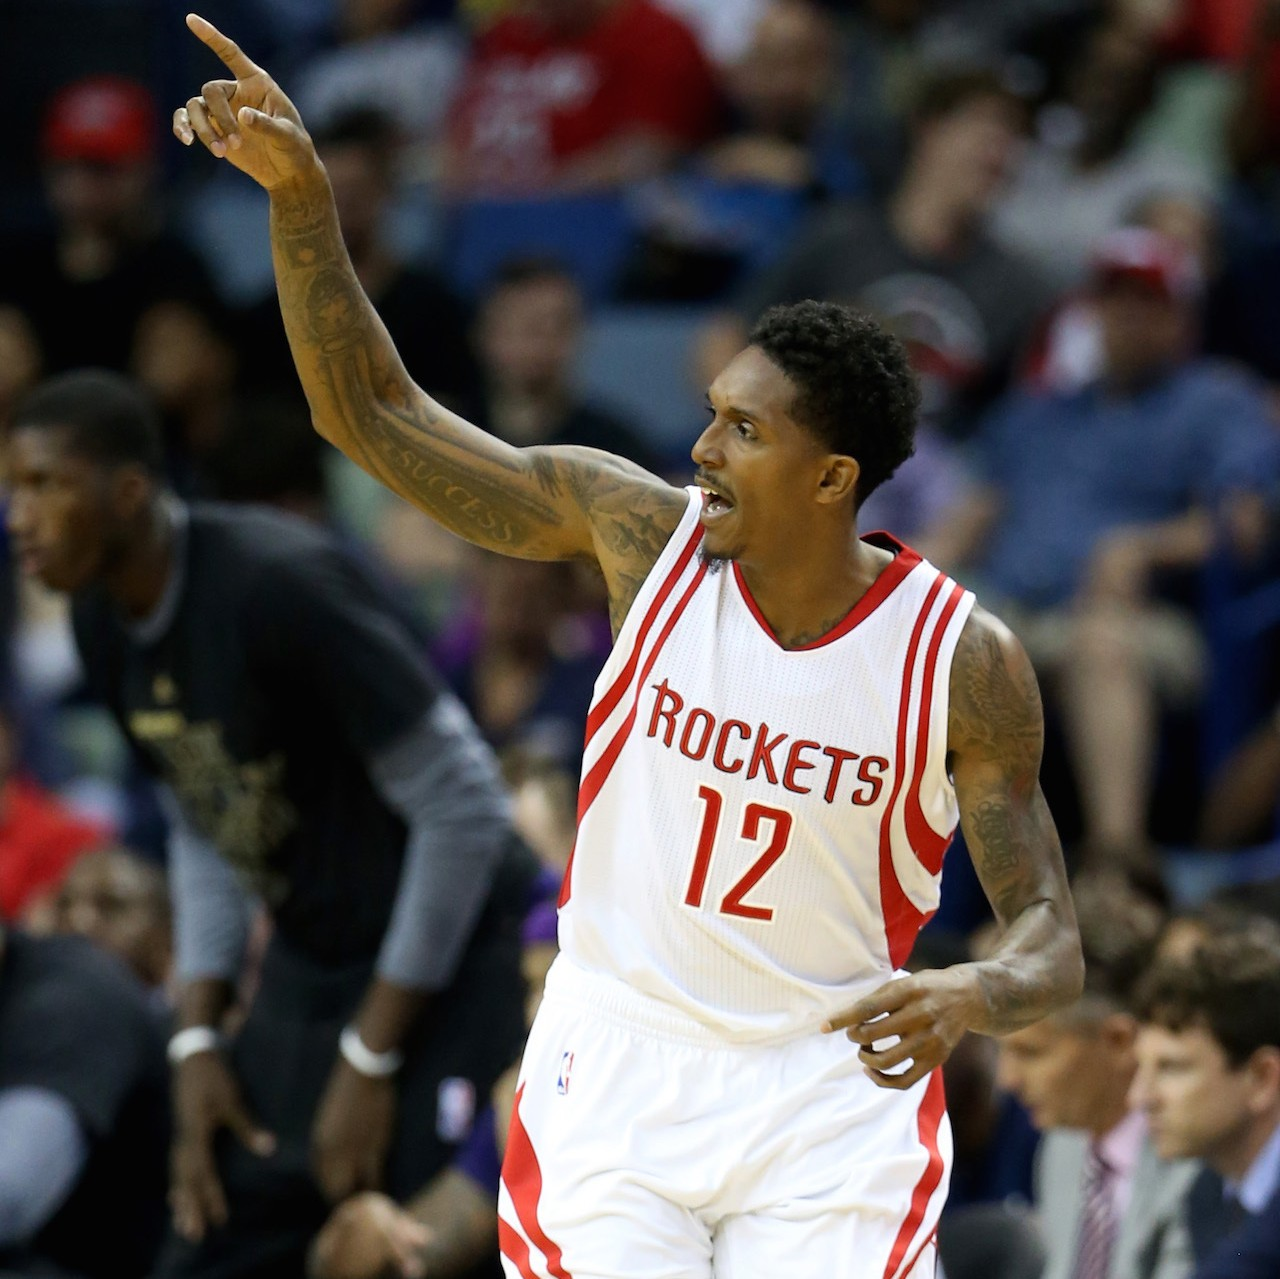 https://sports-images.vice.com/images/highlights/meta/2017/02/24/lou-williams-has-always-been-a-houston-rocket-at-heart-1487950043.jpg?crop=1xw:0.5663716814159292xh;0xw,0.05641592920353982xh&output-quality=75